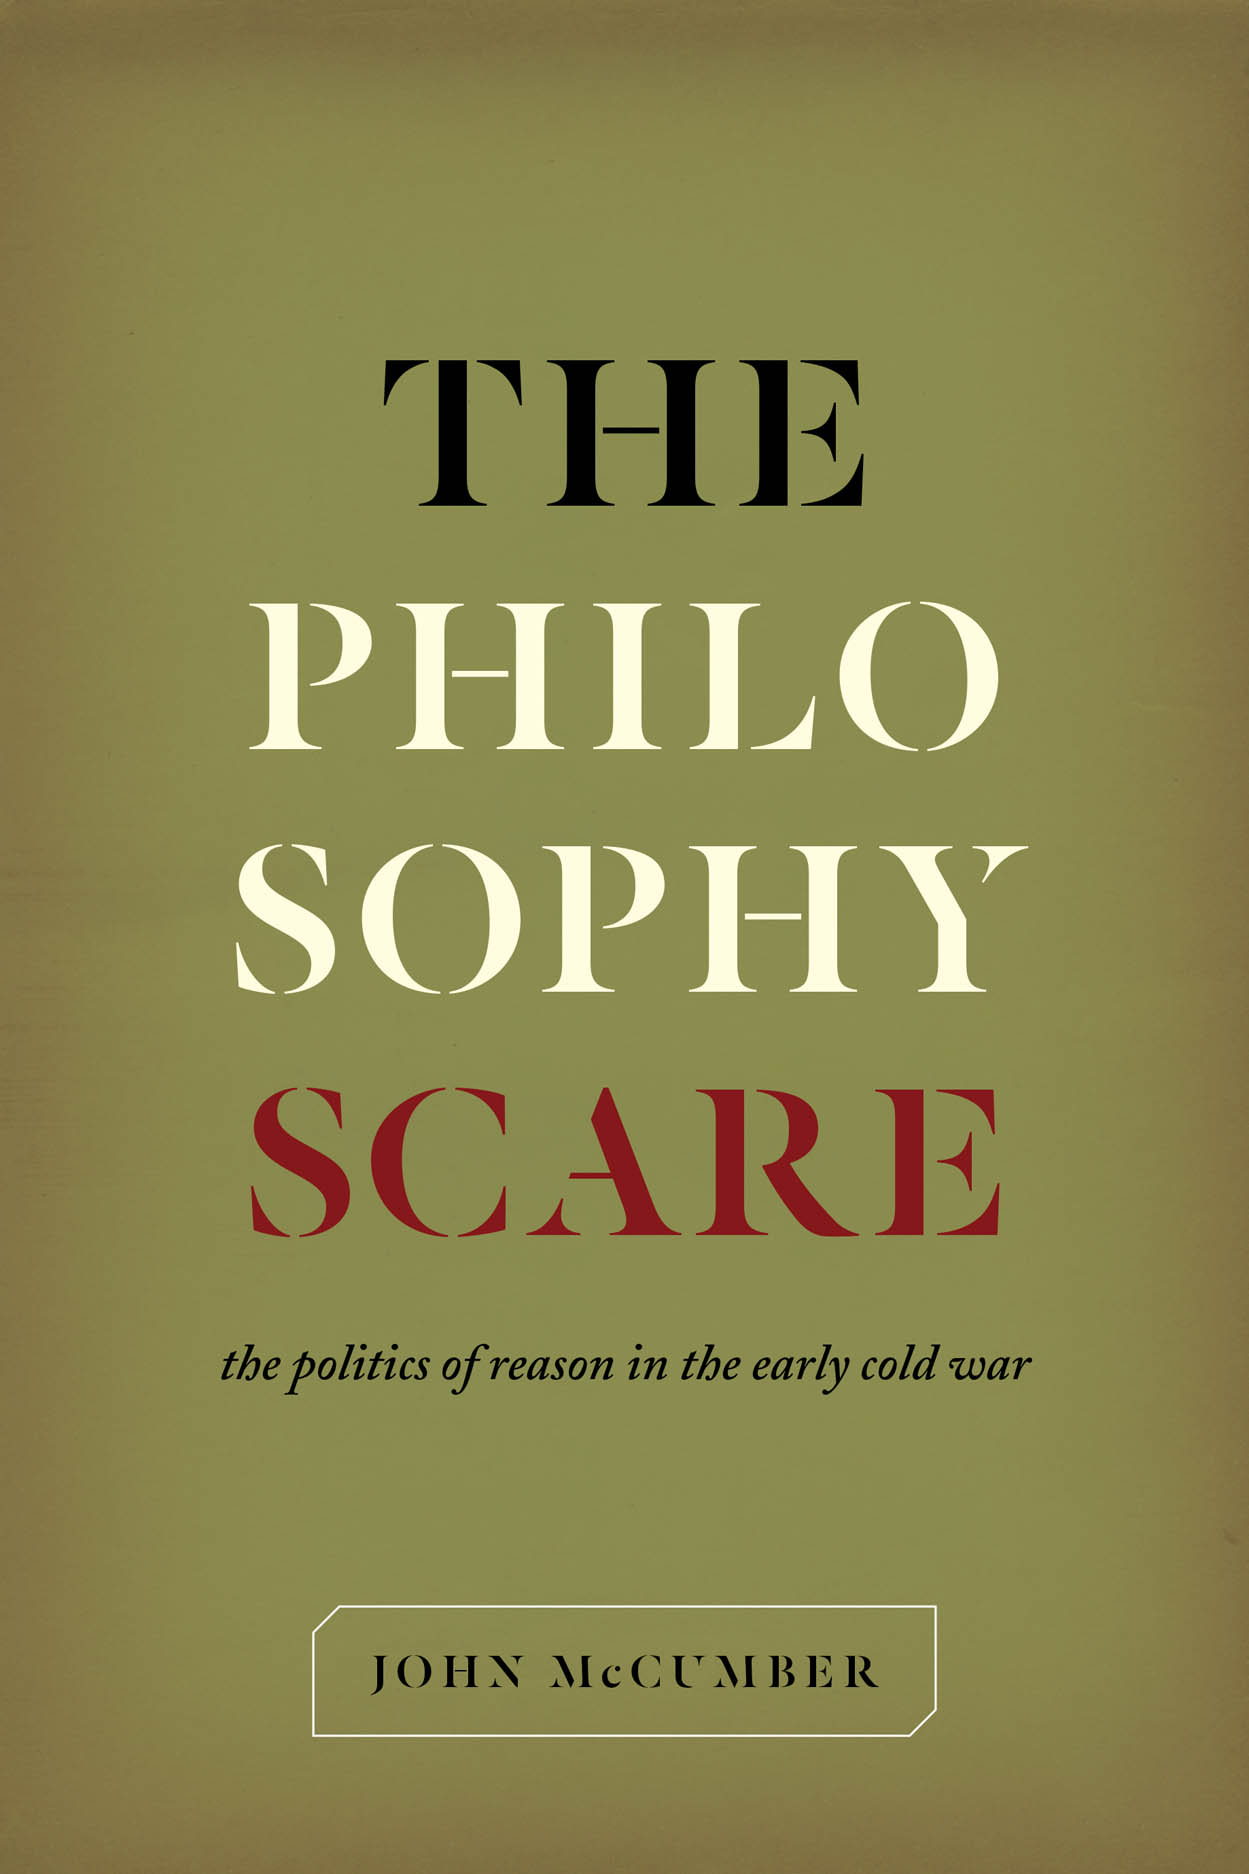 The Philosophy Scare